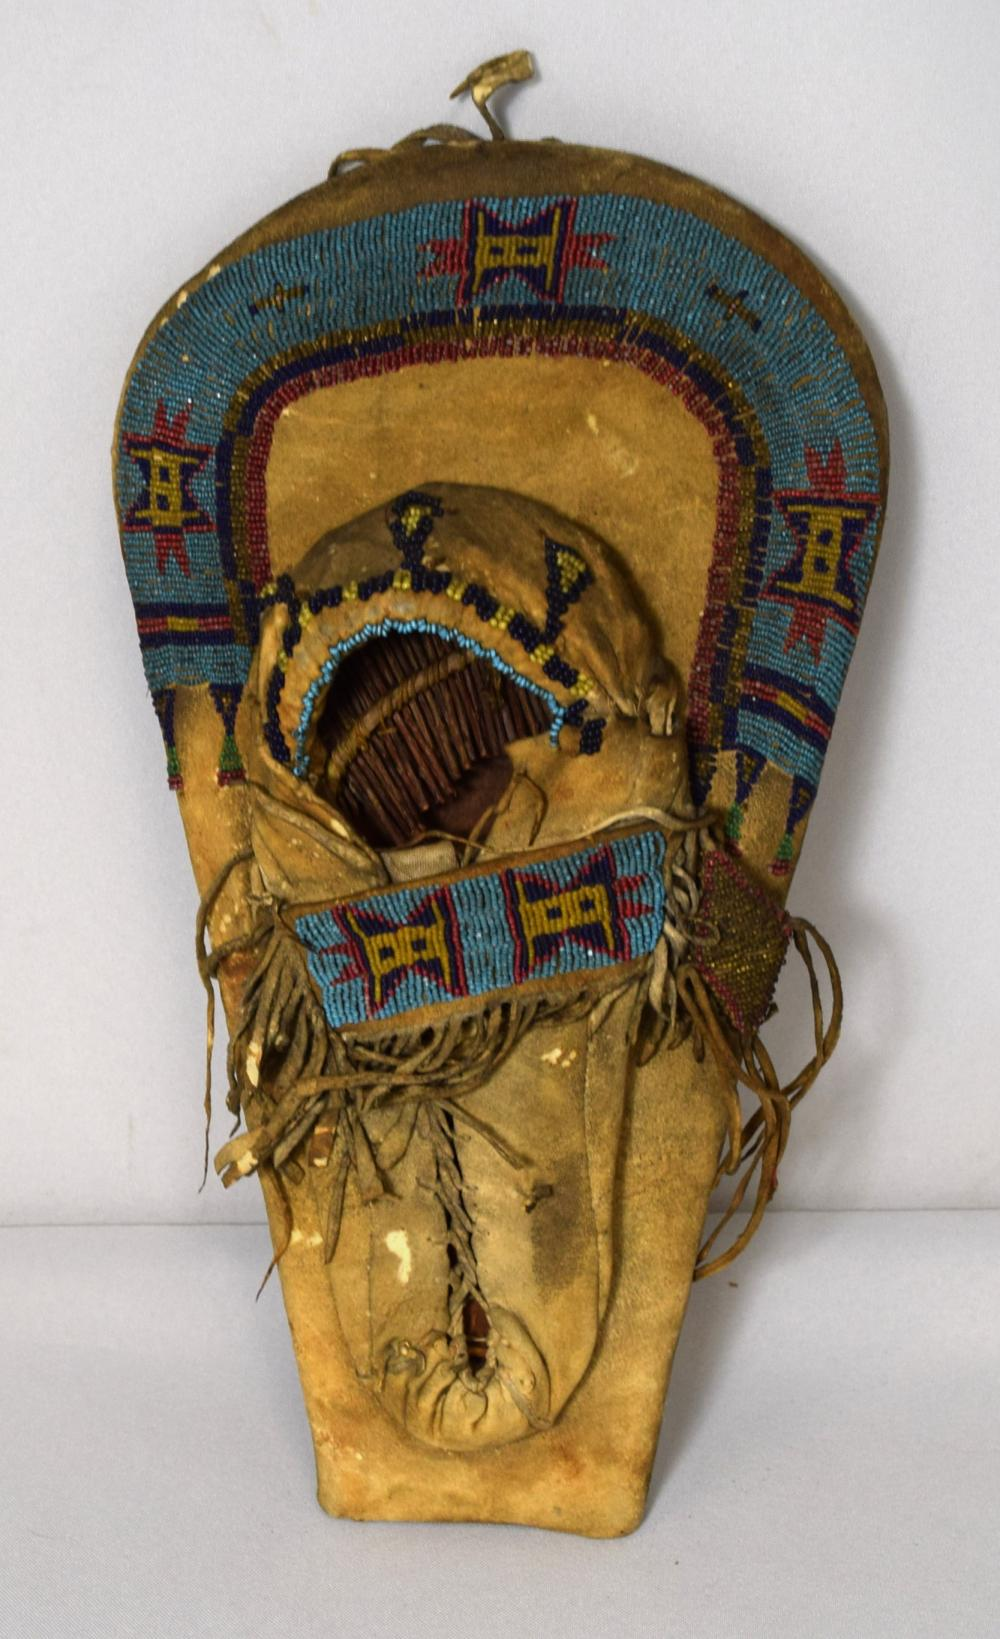 19TH C NATIVE AMERICAN INDIAN BEADED MINIATURE OR DOLL EFFIGY CRADLEBOARD: